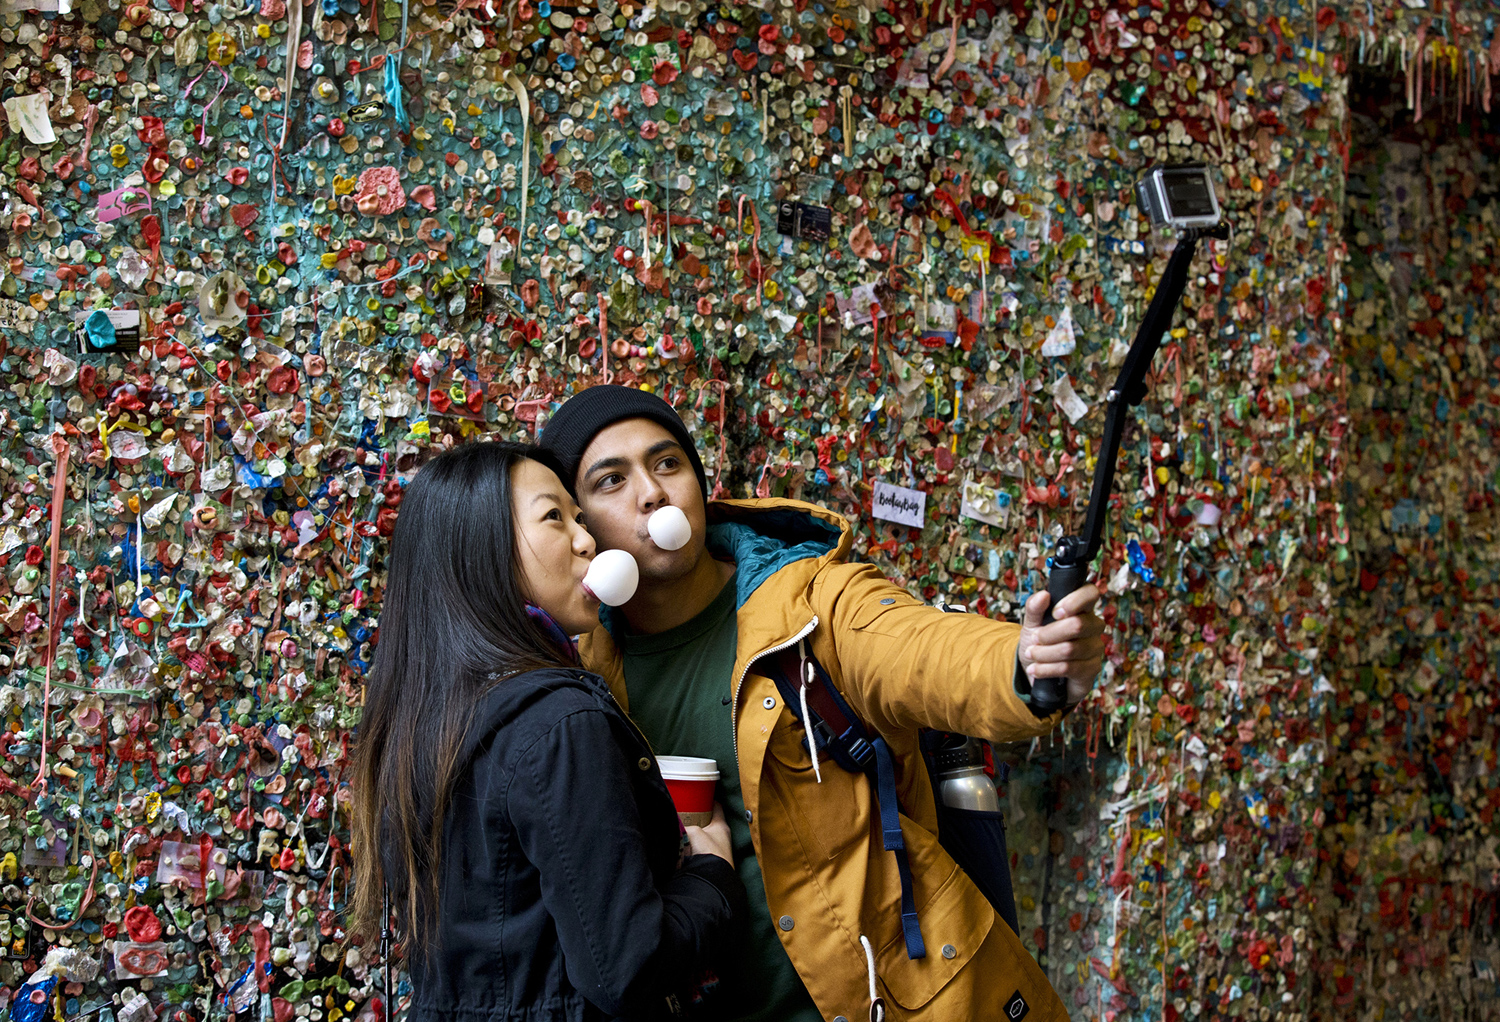 gum chewing essay Chewing gum and gum essay if your gum is sugar-free, there's a good chance it contains the artificial sweetener aspartame aspartame is metabolized inside your.